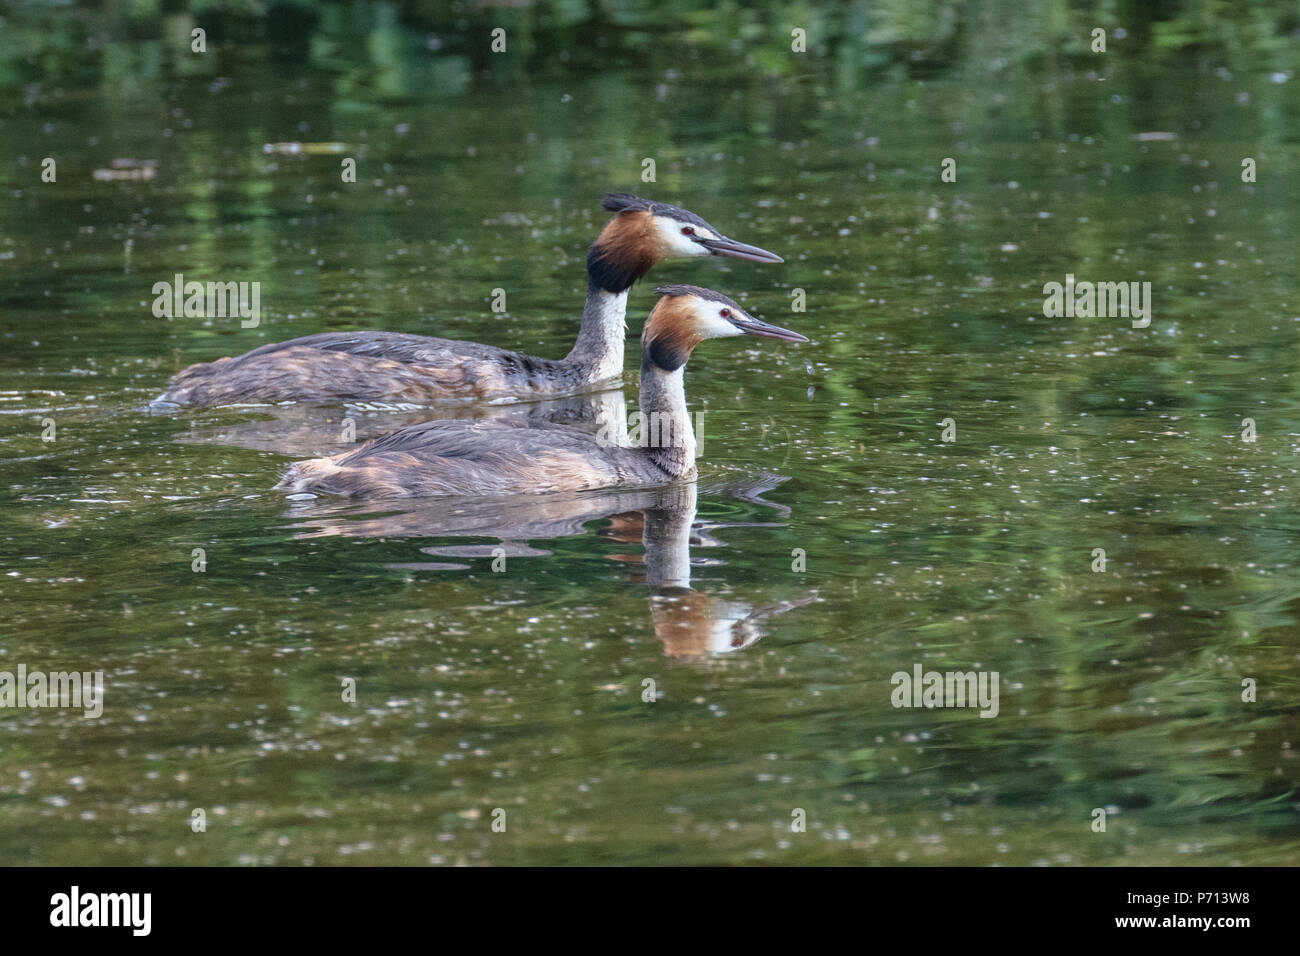 Pair of great crested grebes (Podiceps cristatus) - Stock Image